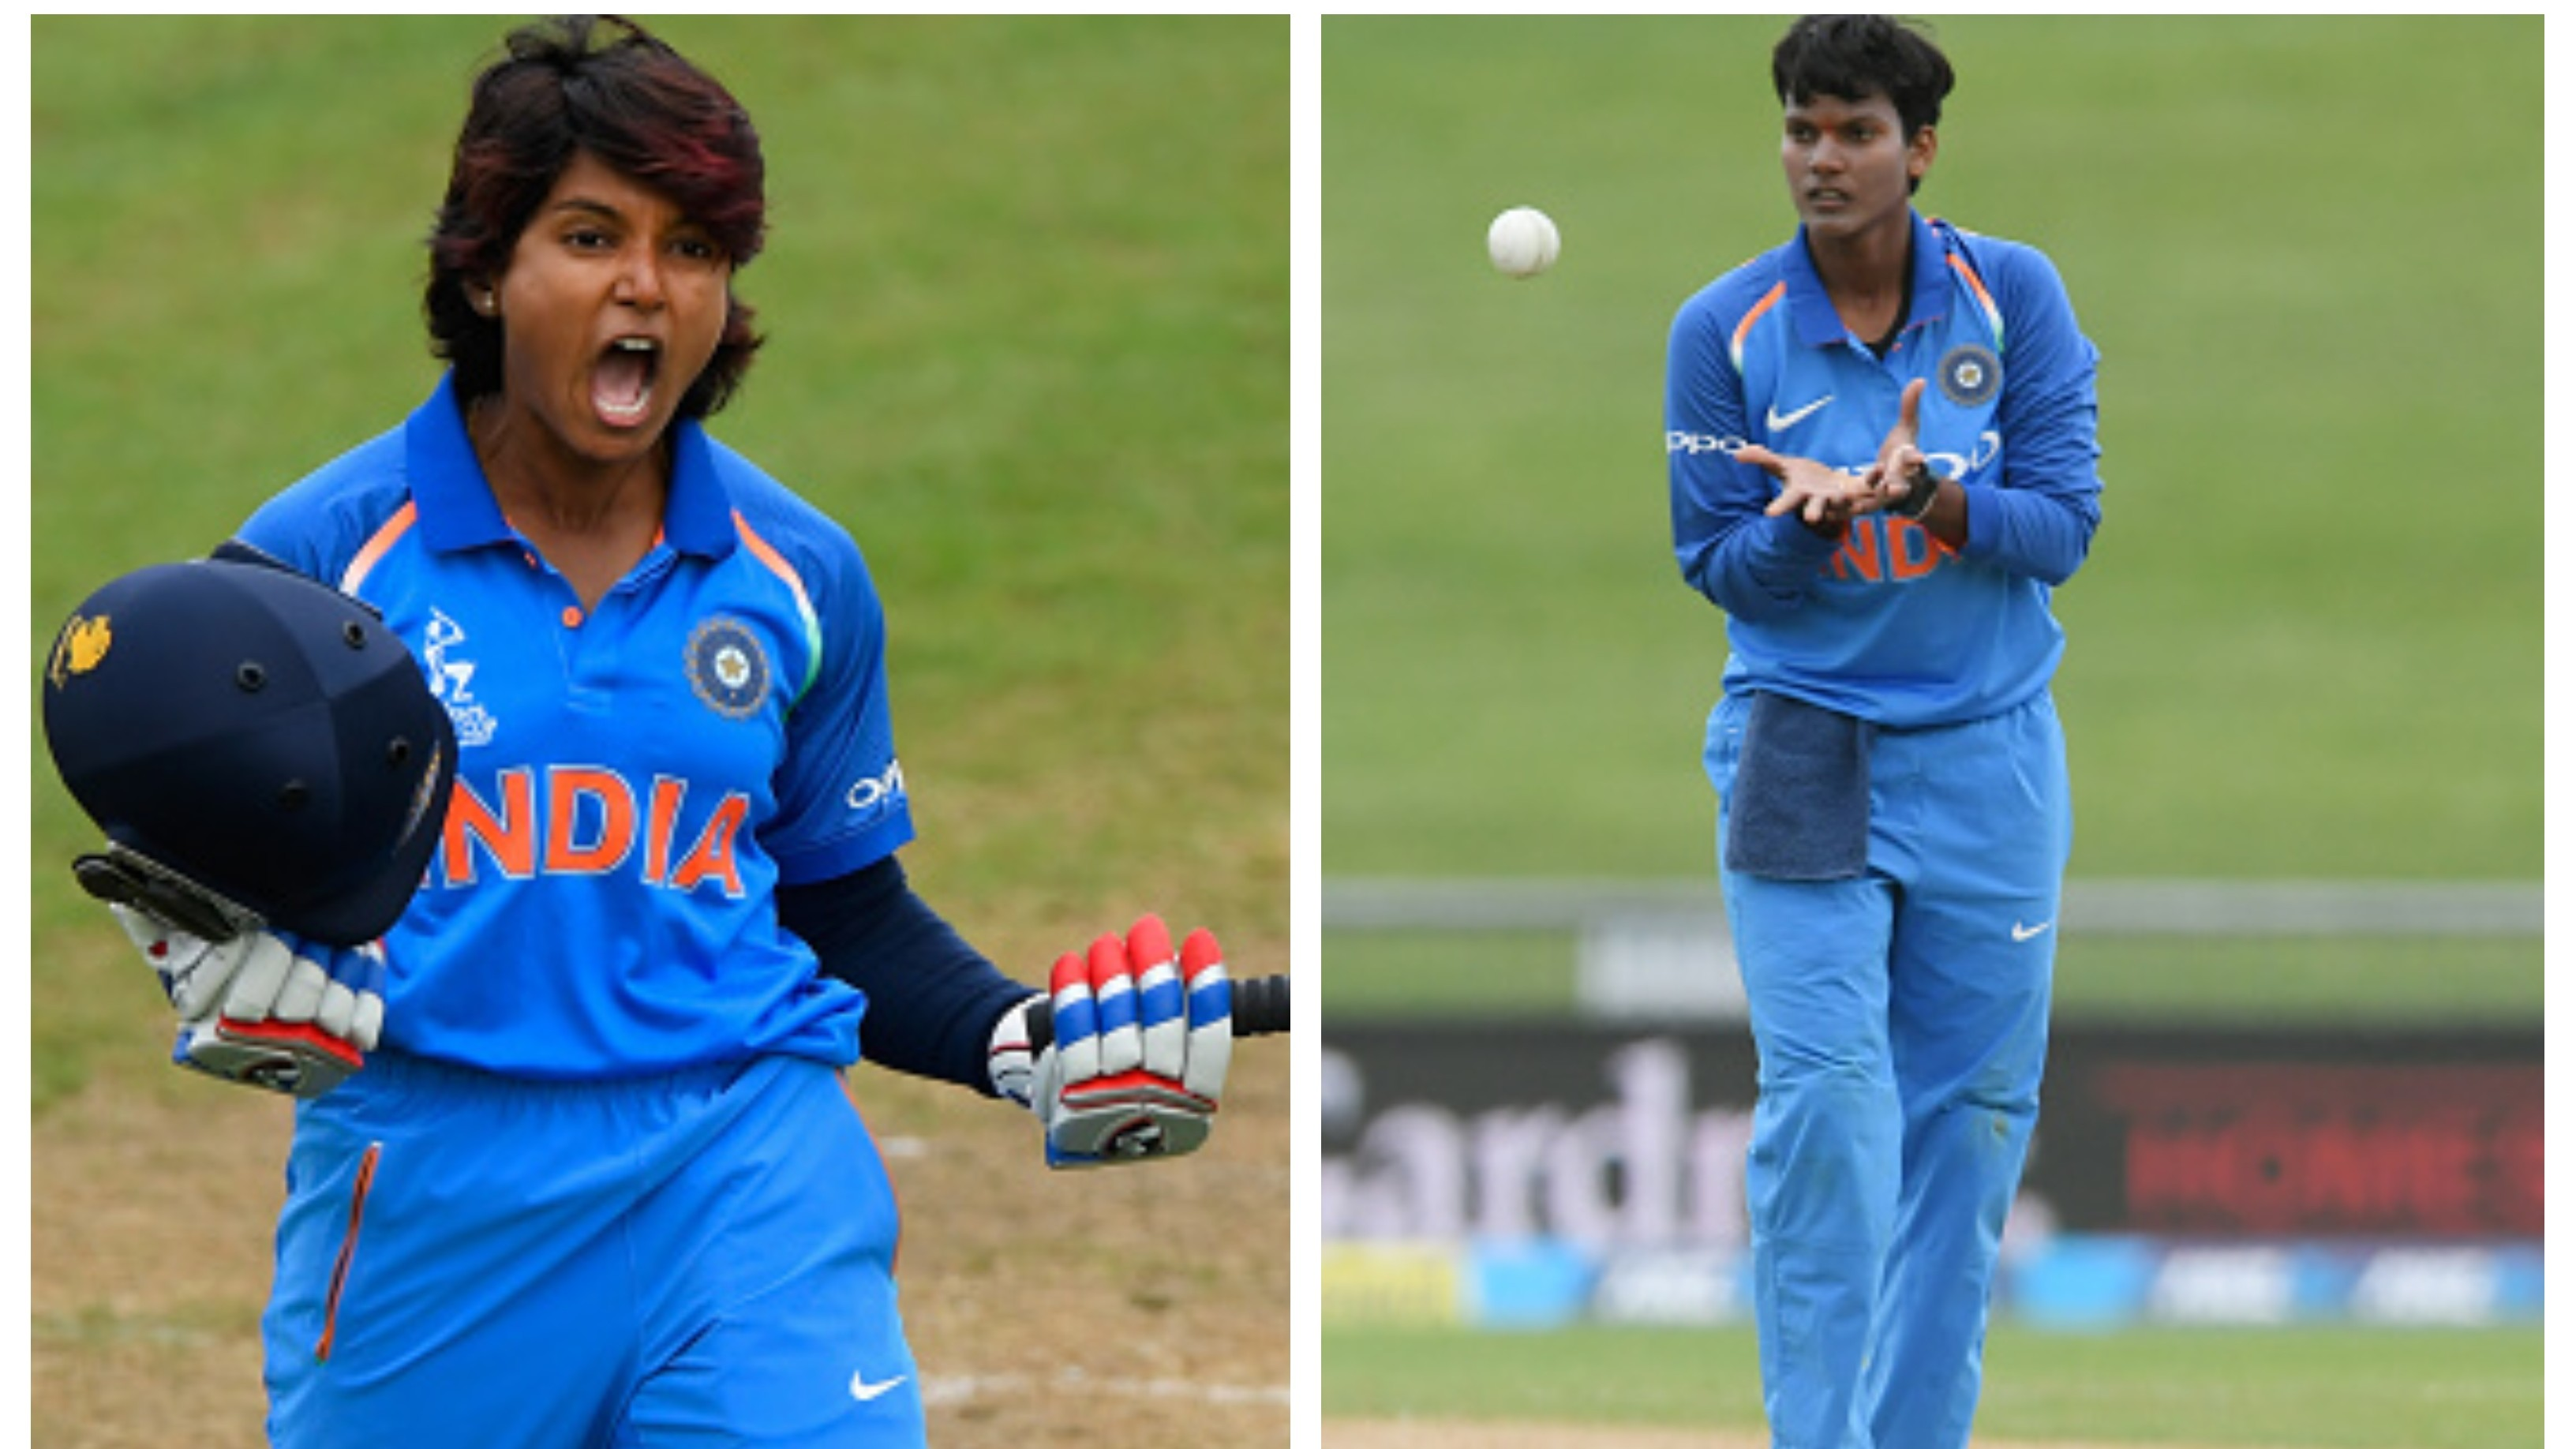 WIW v INDW 2019: Punam Raut, bowlers power India to a big win over West Indies in 2nd ODI